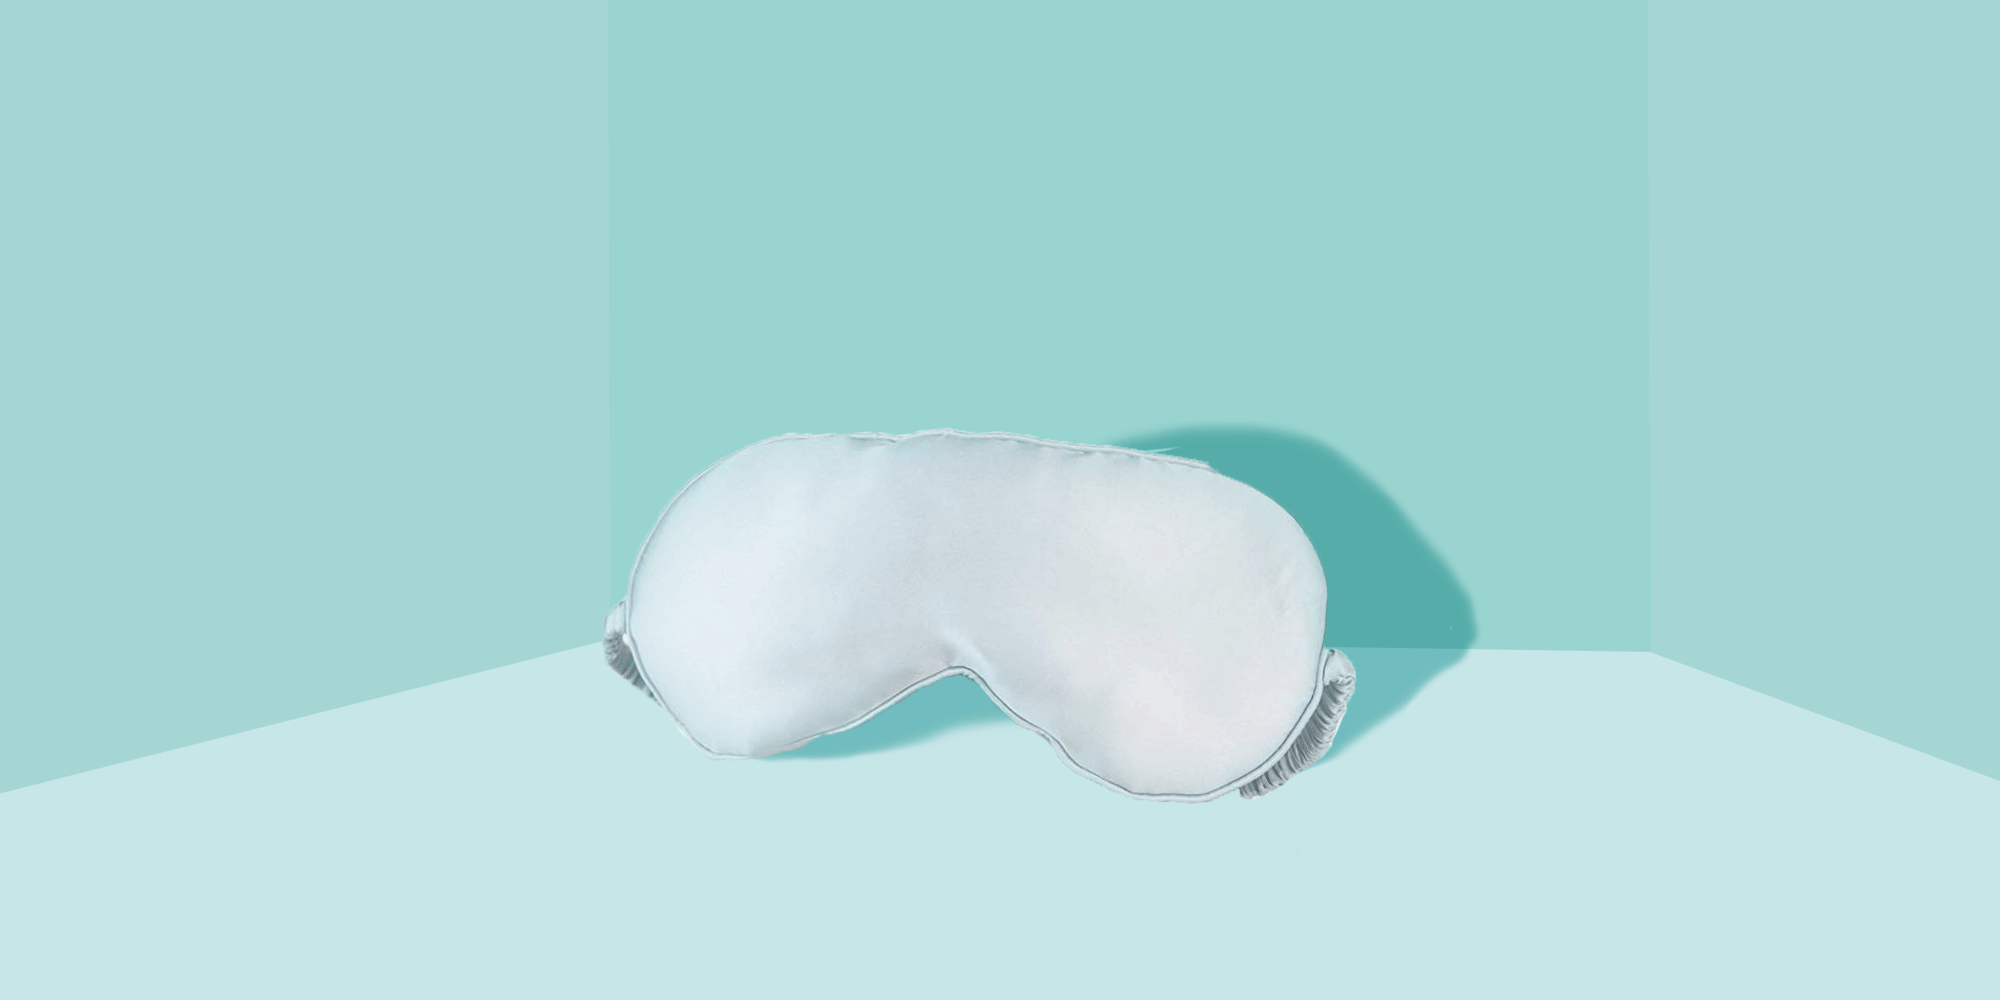 10 Best Sleep Masks Of 2020 Top Rated Eye Masks For Traveling